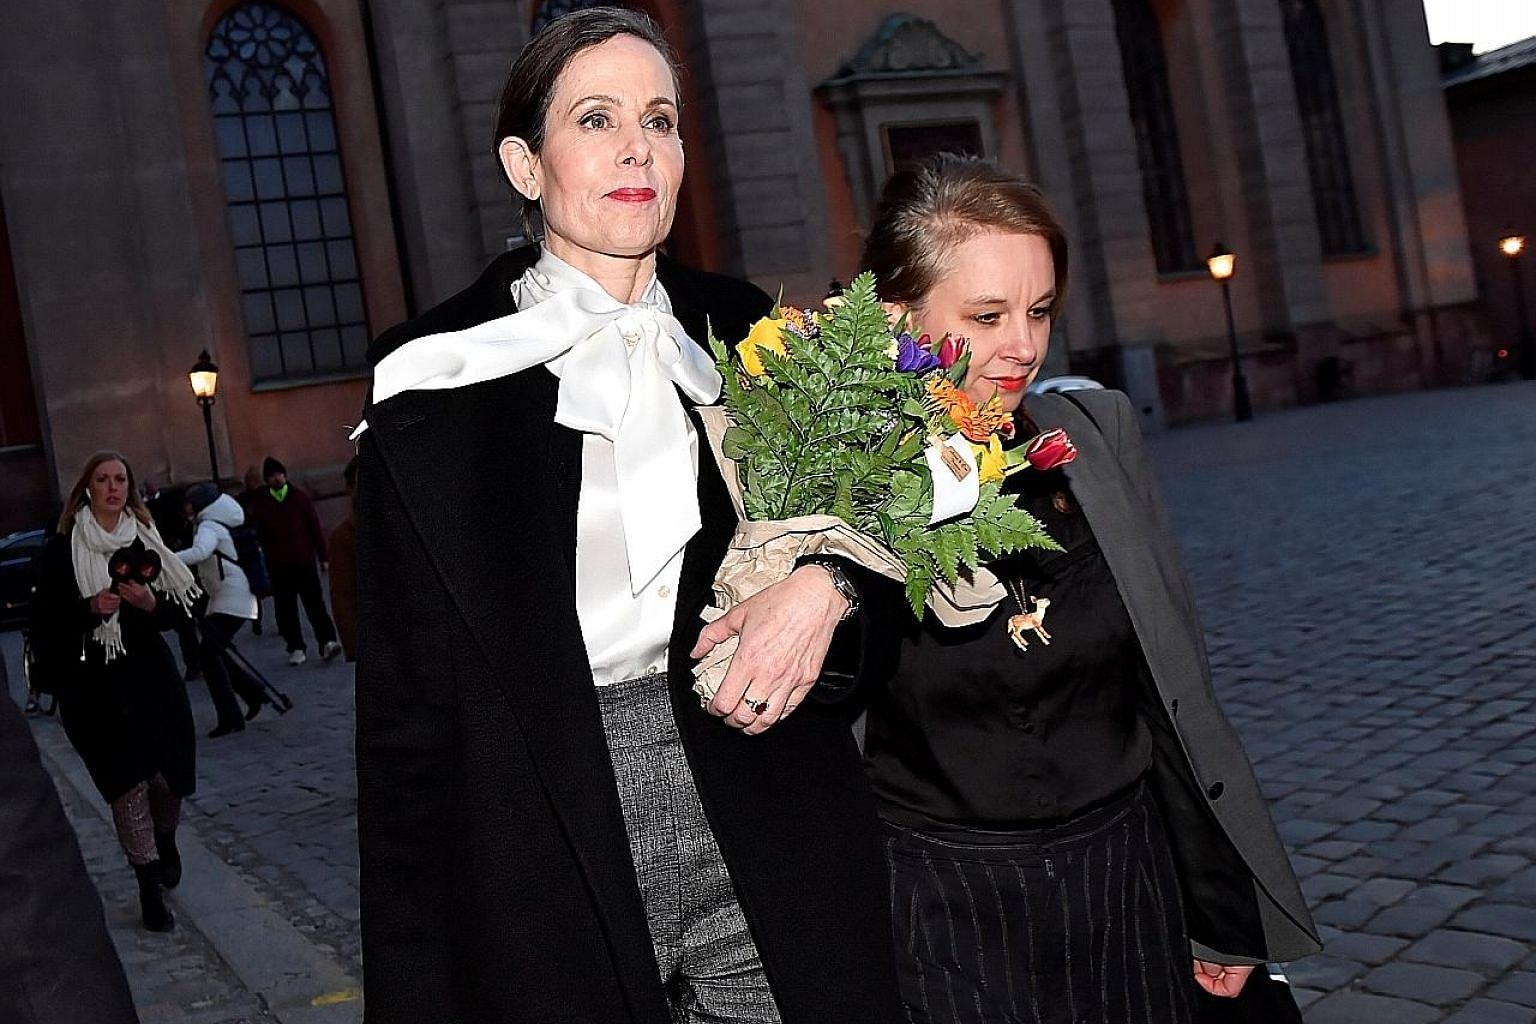 Former permanent secretary Sara Danius (left) on the day of her resignation, leaving the academy with member Sara Stridsberg. She had failed to receive support for reforms in the wake of the scandal.